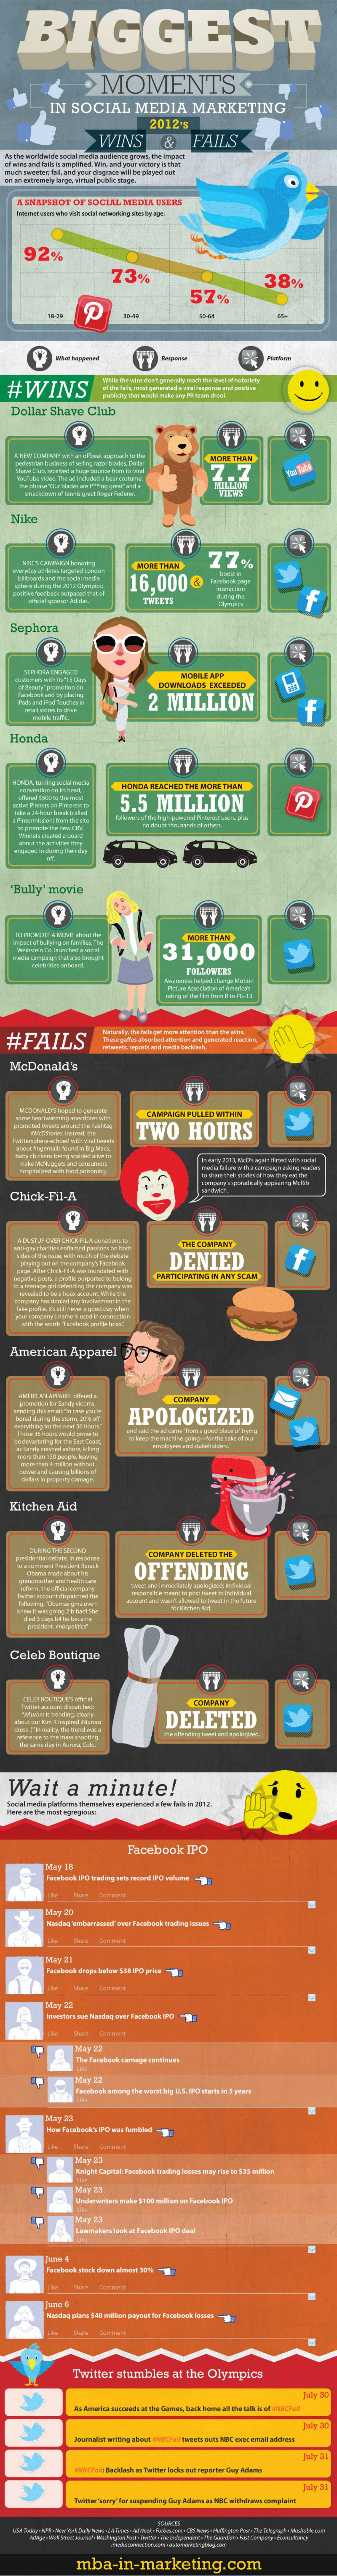 Biggest Moments in Social Media